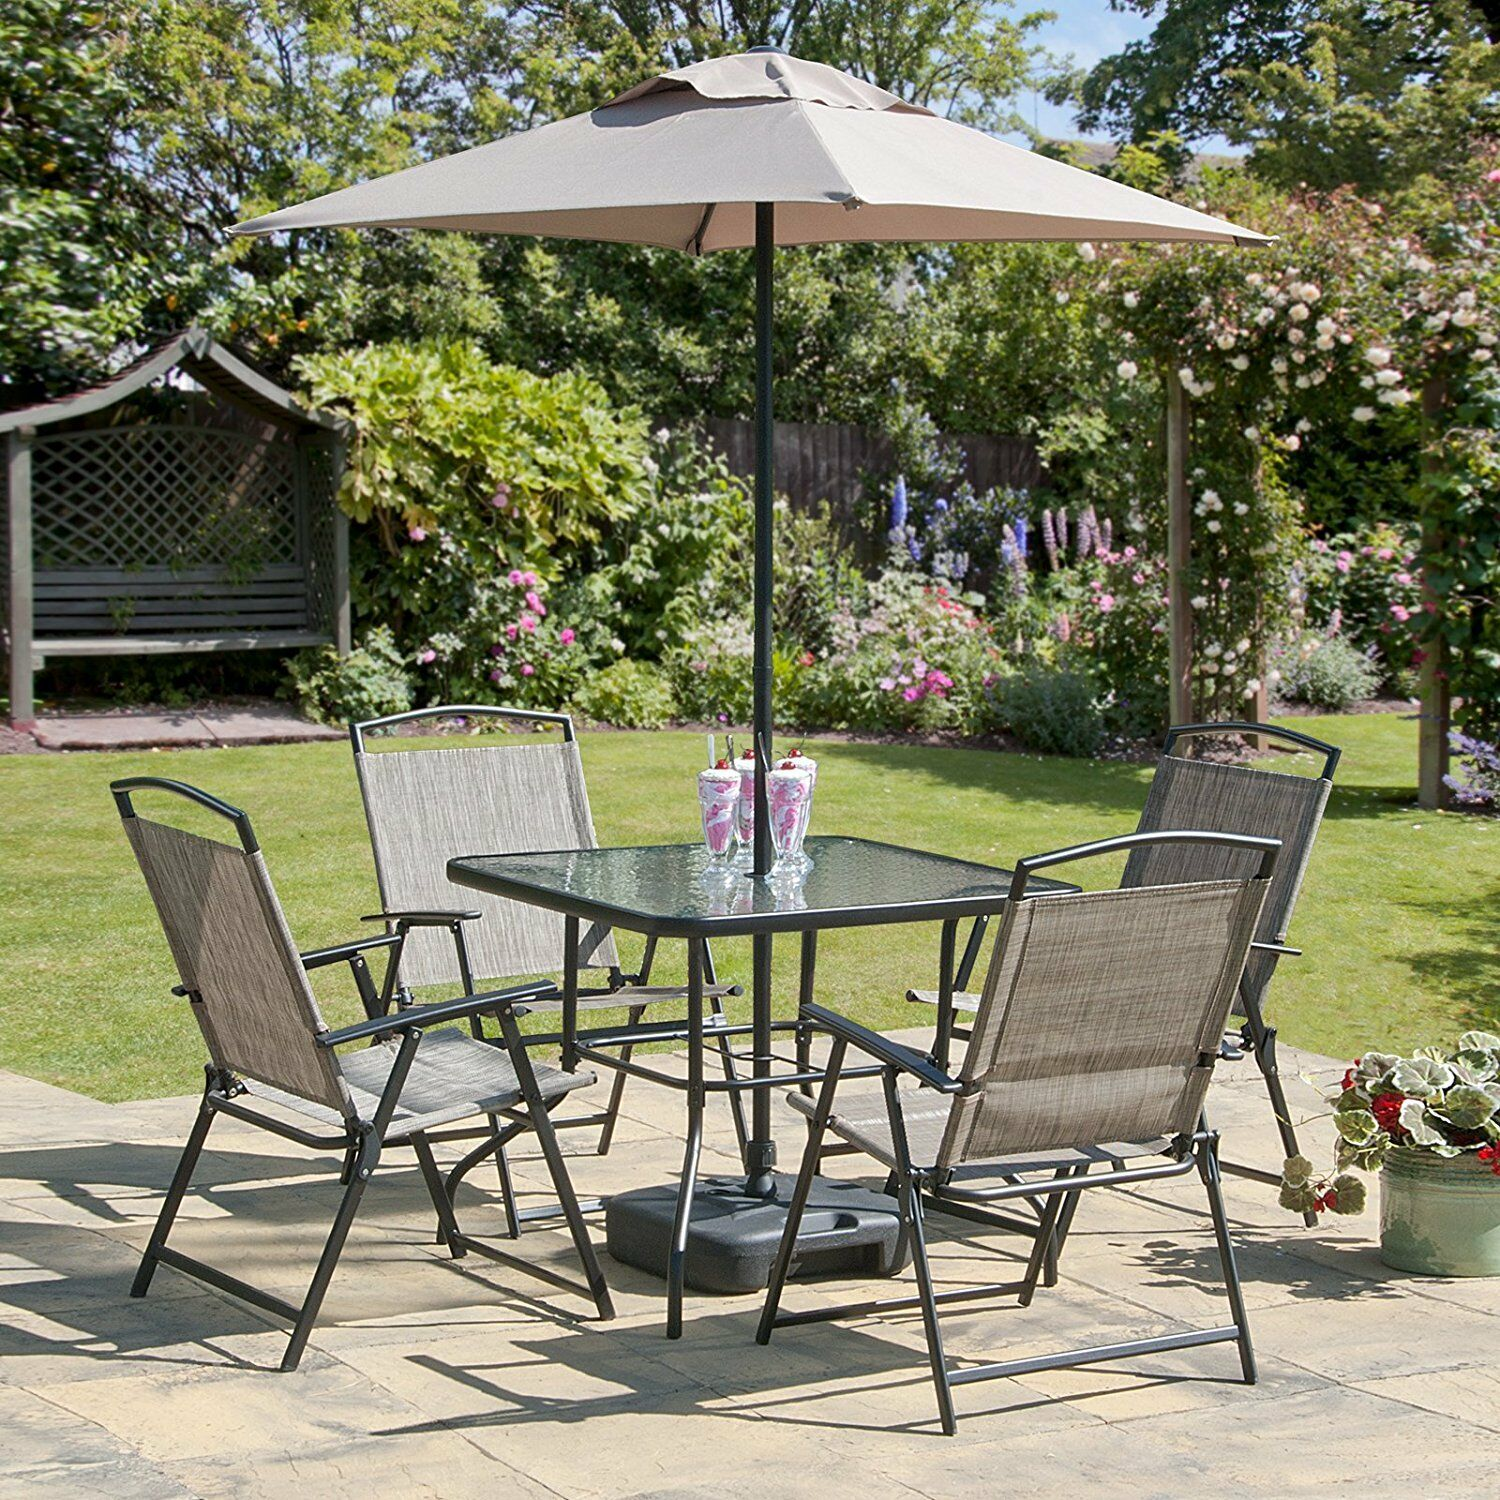 Garden Furniture - Oasis Patio Set Outdoor Garden Furniture 7 Piece Folding Chairs Table Parasol